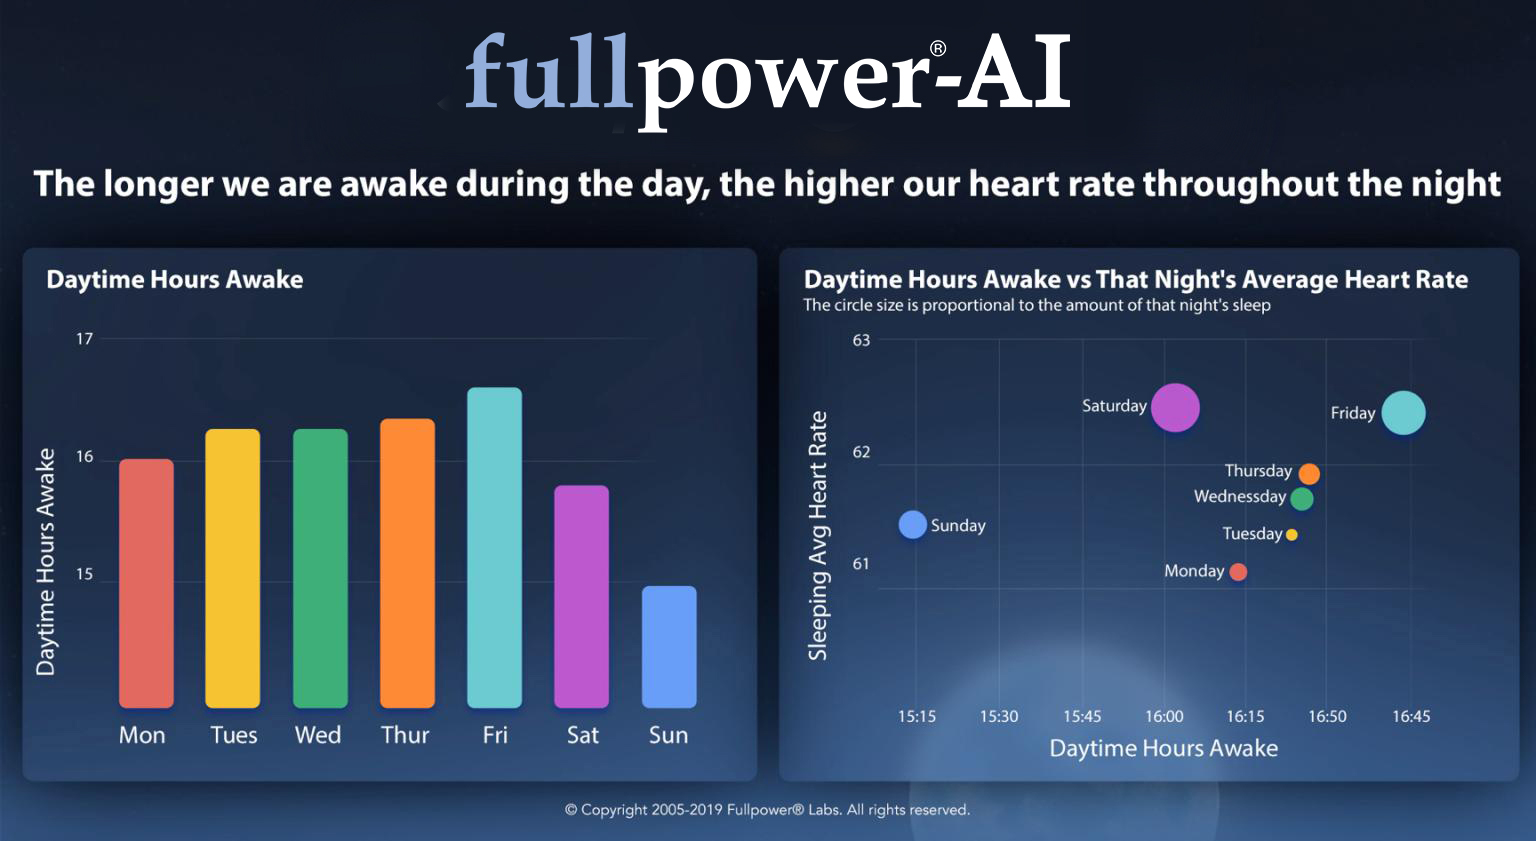 The longer we are awake during the day, the higher our heart rate throughout the night